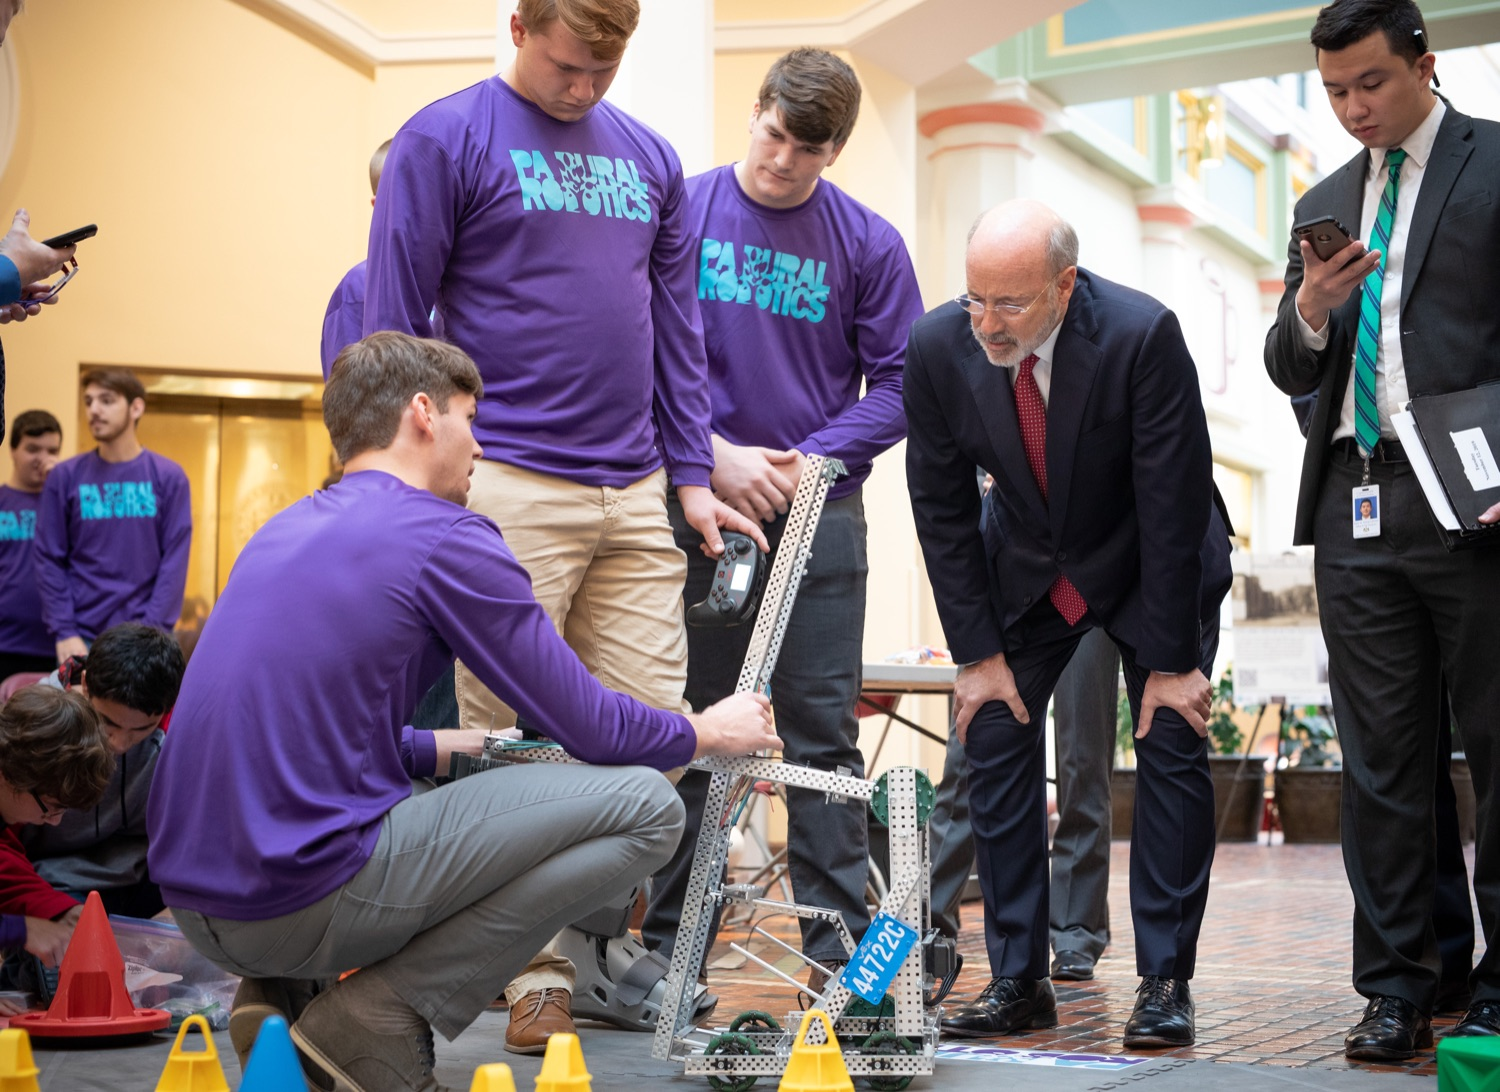 """<a href=""""https://filesource.wostreaming.net/commonwealthofpa/photo/17587_gov_pasmart_rural_robotics_dz_007.jpg"""" target=""""_blank"""">⇣Download Photo<br></a>Pennsylvania Governor Tom Wolf meeting with students at the robotics demonstration.  Celebrating the success of the PAsmart workforce development program to create educational opportunities at schools across the commonwealth, Governor Tom Wolf welcomed more than 50 students from the Pennsylvania Rural Robotics Initiative to the Capitol today. The students from nine western Pennsylvania school districts showcased their skills in coding, robotics and drone technology. The Wolf administration awarded the initiative a $299,000 PAsmart Advancing Grant earlier this year. Harrisburg, PA  Tuesday, November 12, 2019"""